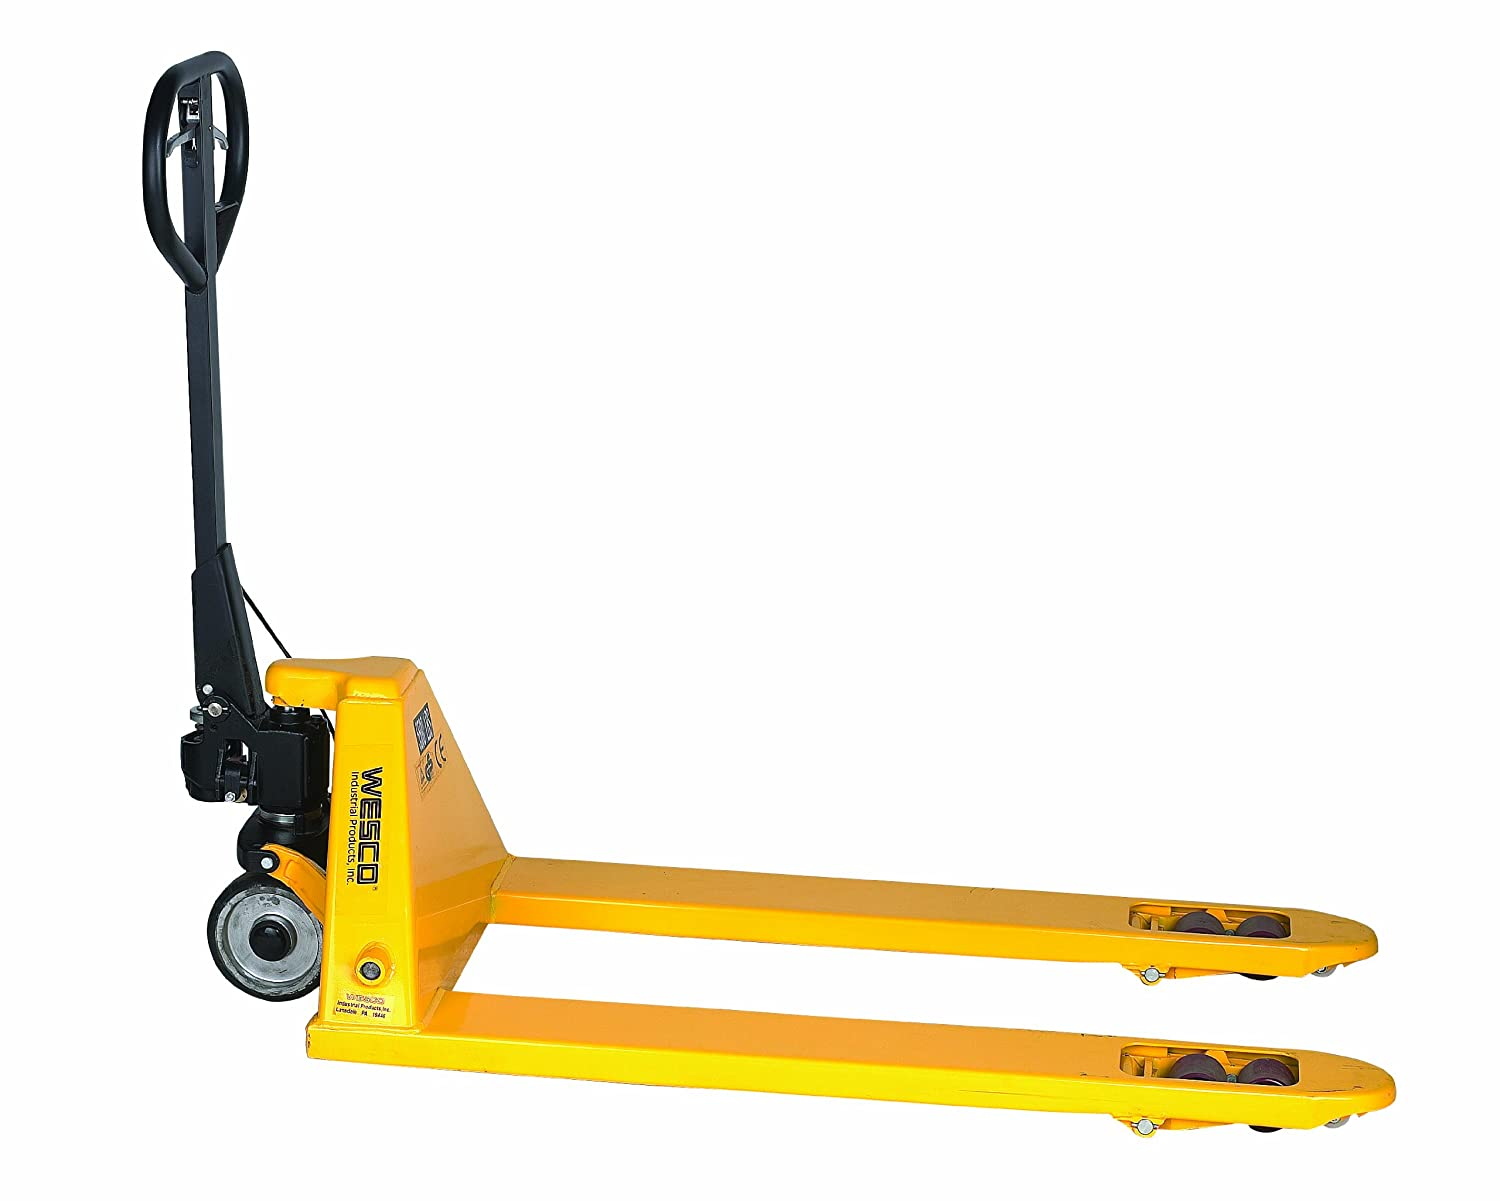 """Wesco 272667 Pallet Truck with Hand Brake, Polyurethane Wheels, 5500 lbs  Load Capacity, 48-1/4"""" Height, 48"""" Length x 27"""" Width: Amazon.com:  Industrial & ..."""